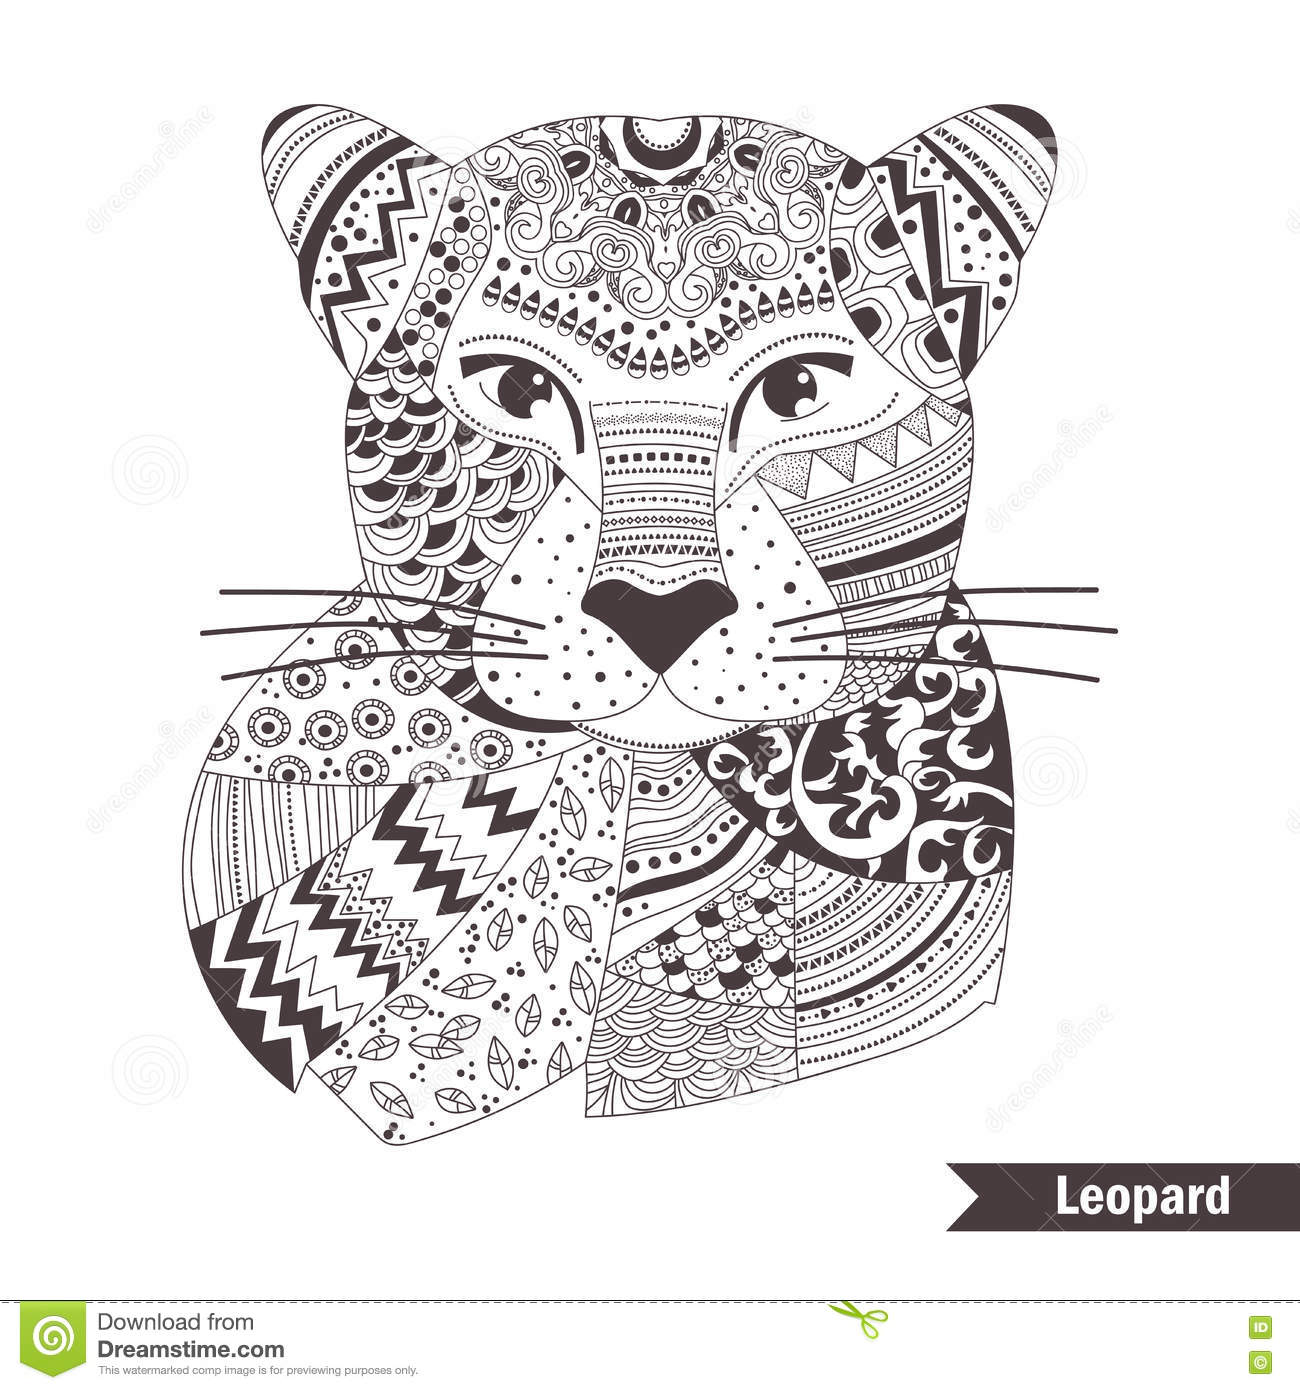 Leopard Coloring book stock vector